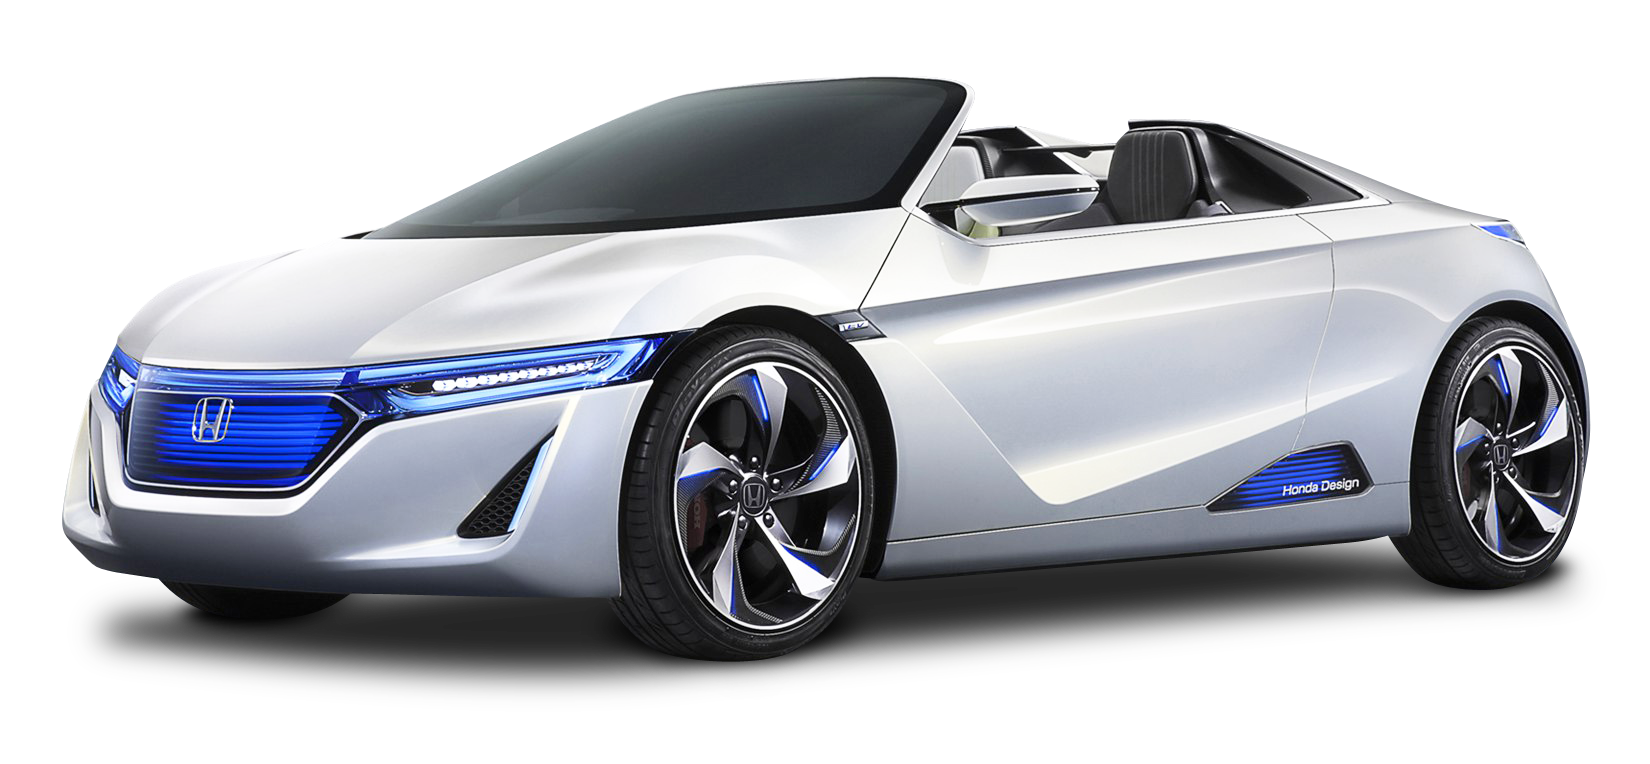 Electric car clipart no background royalty free download Honda EV Ster Electric Sports Car PNG Image - PurePNG | Free ... royalty free download